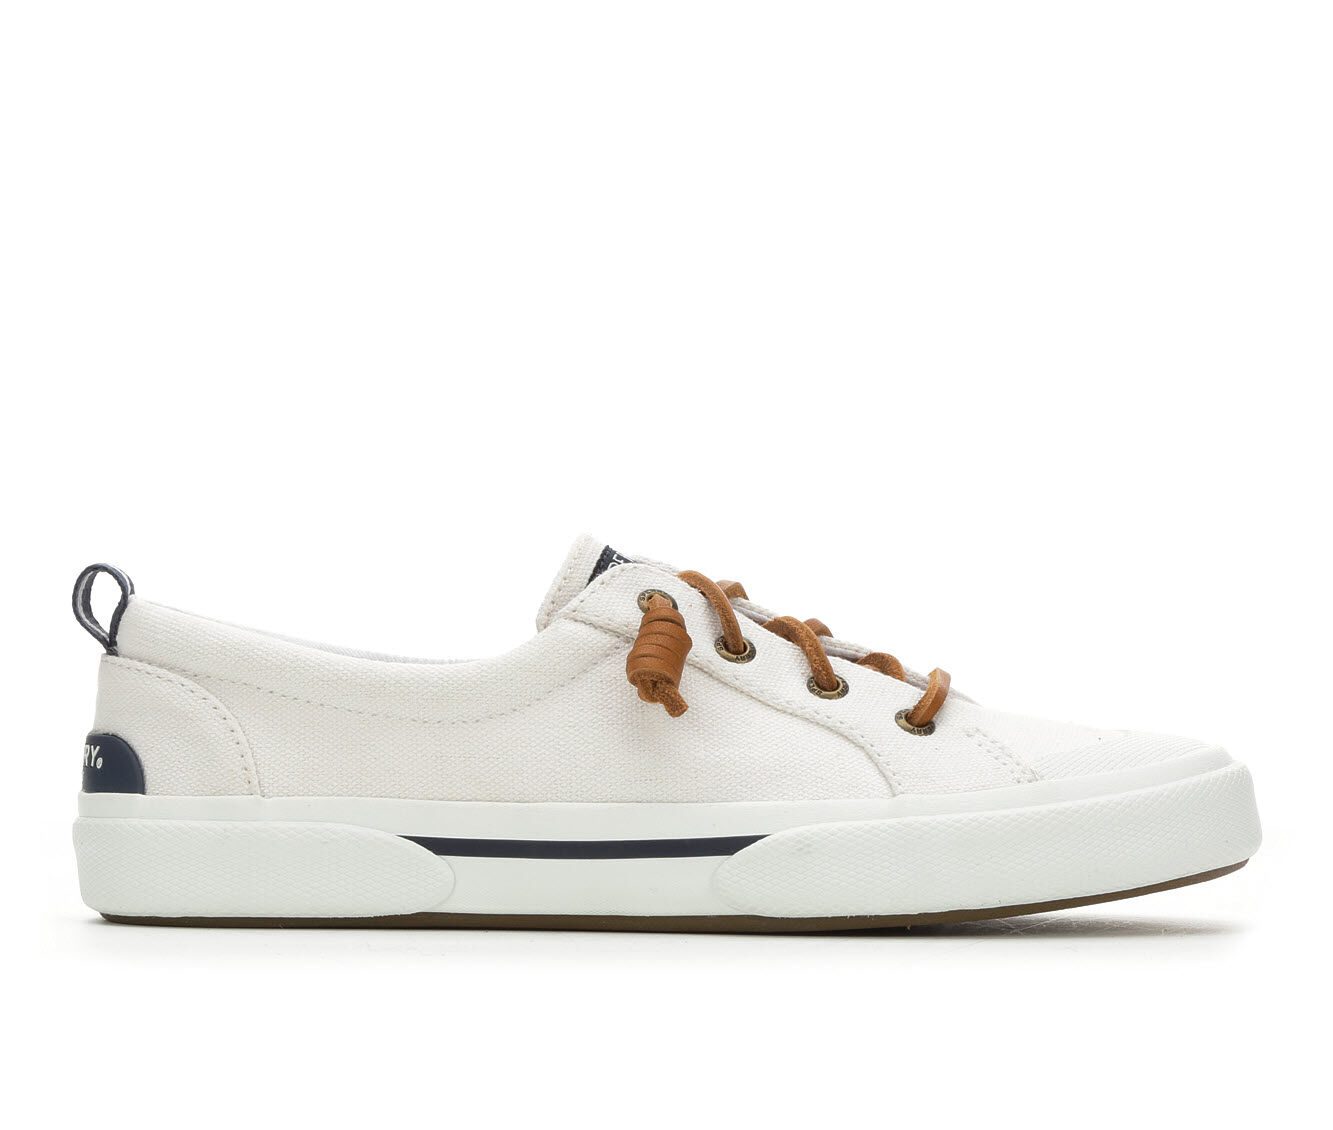 Women's Sperry Wave Lace to Toe Sneakers White